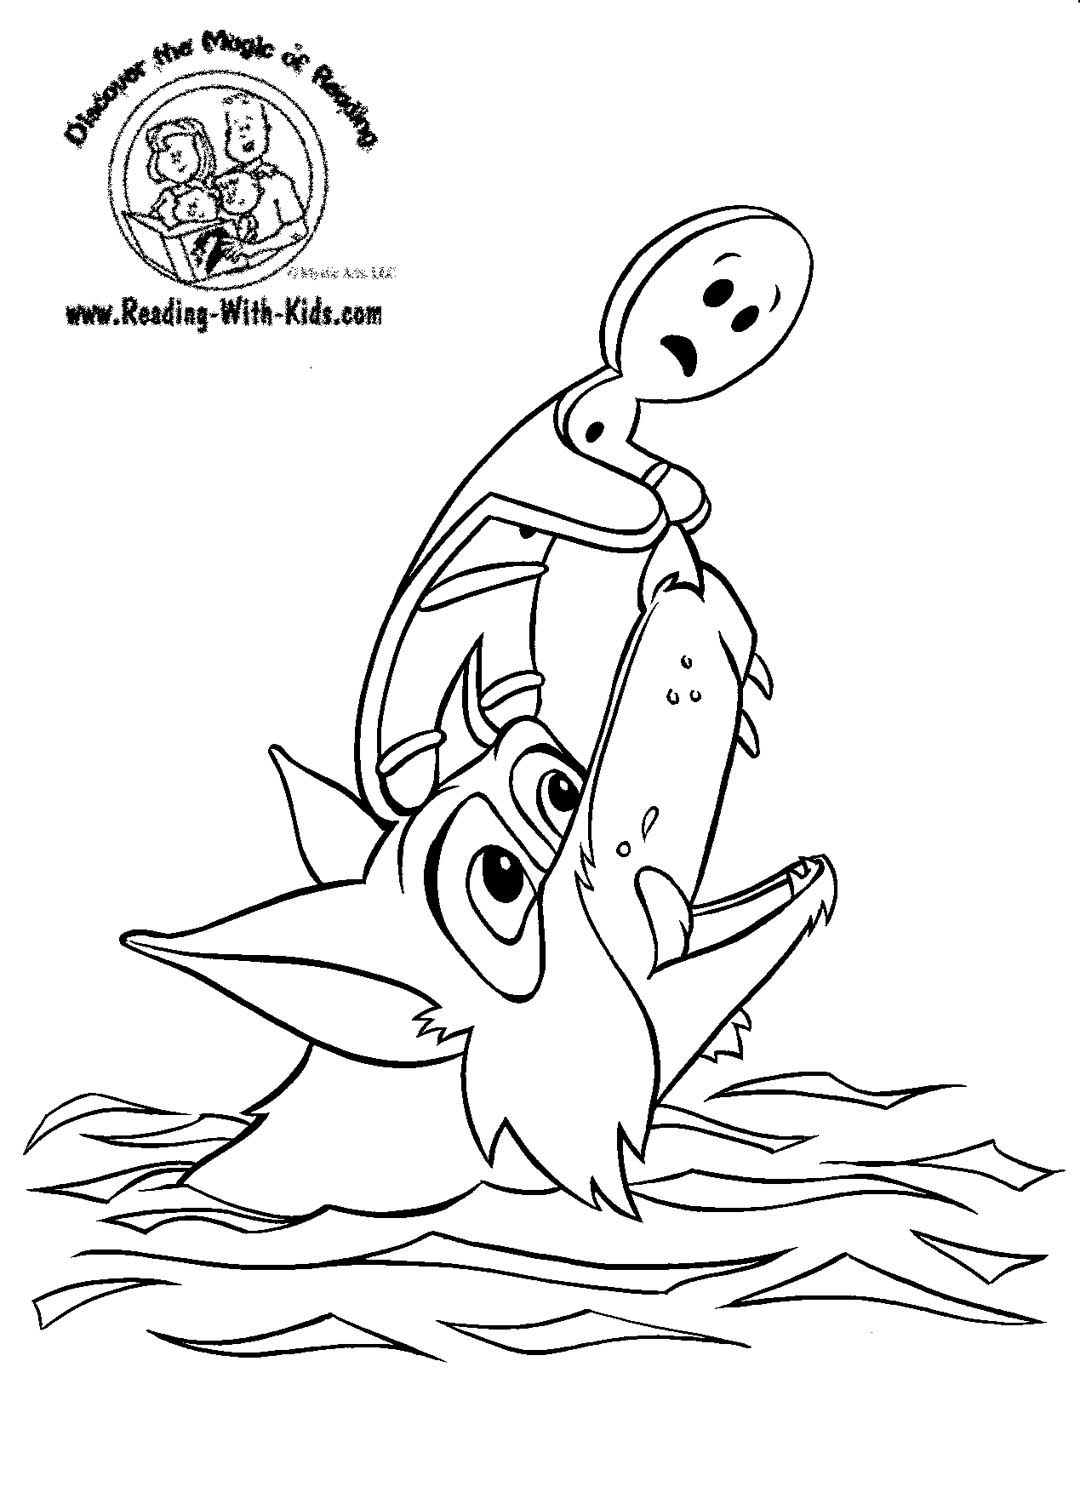 Gingerbread Man Coloring Sheet #FairyTale #FairyTales ...